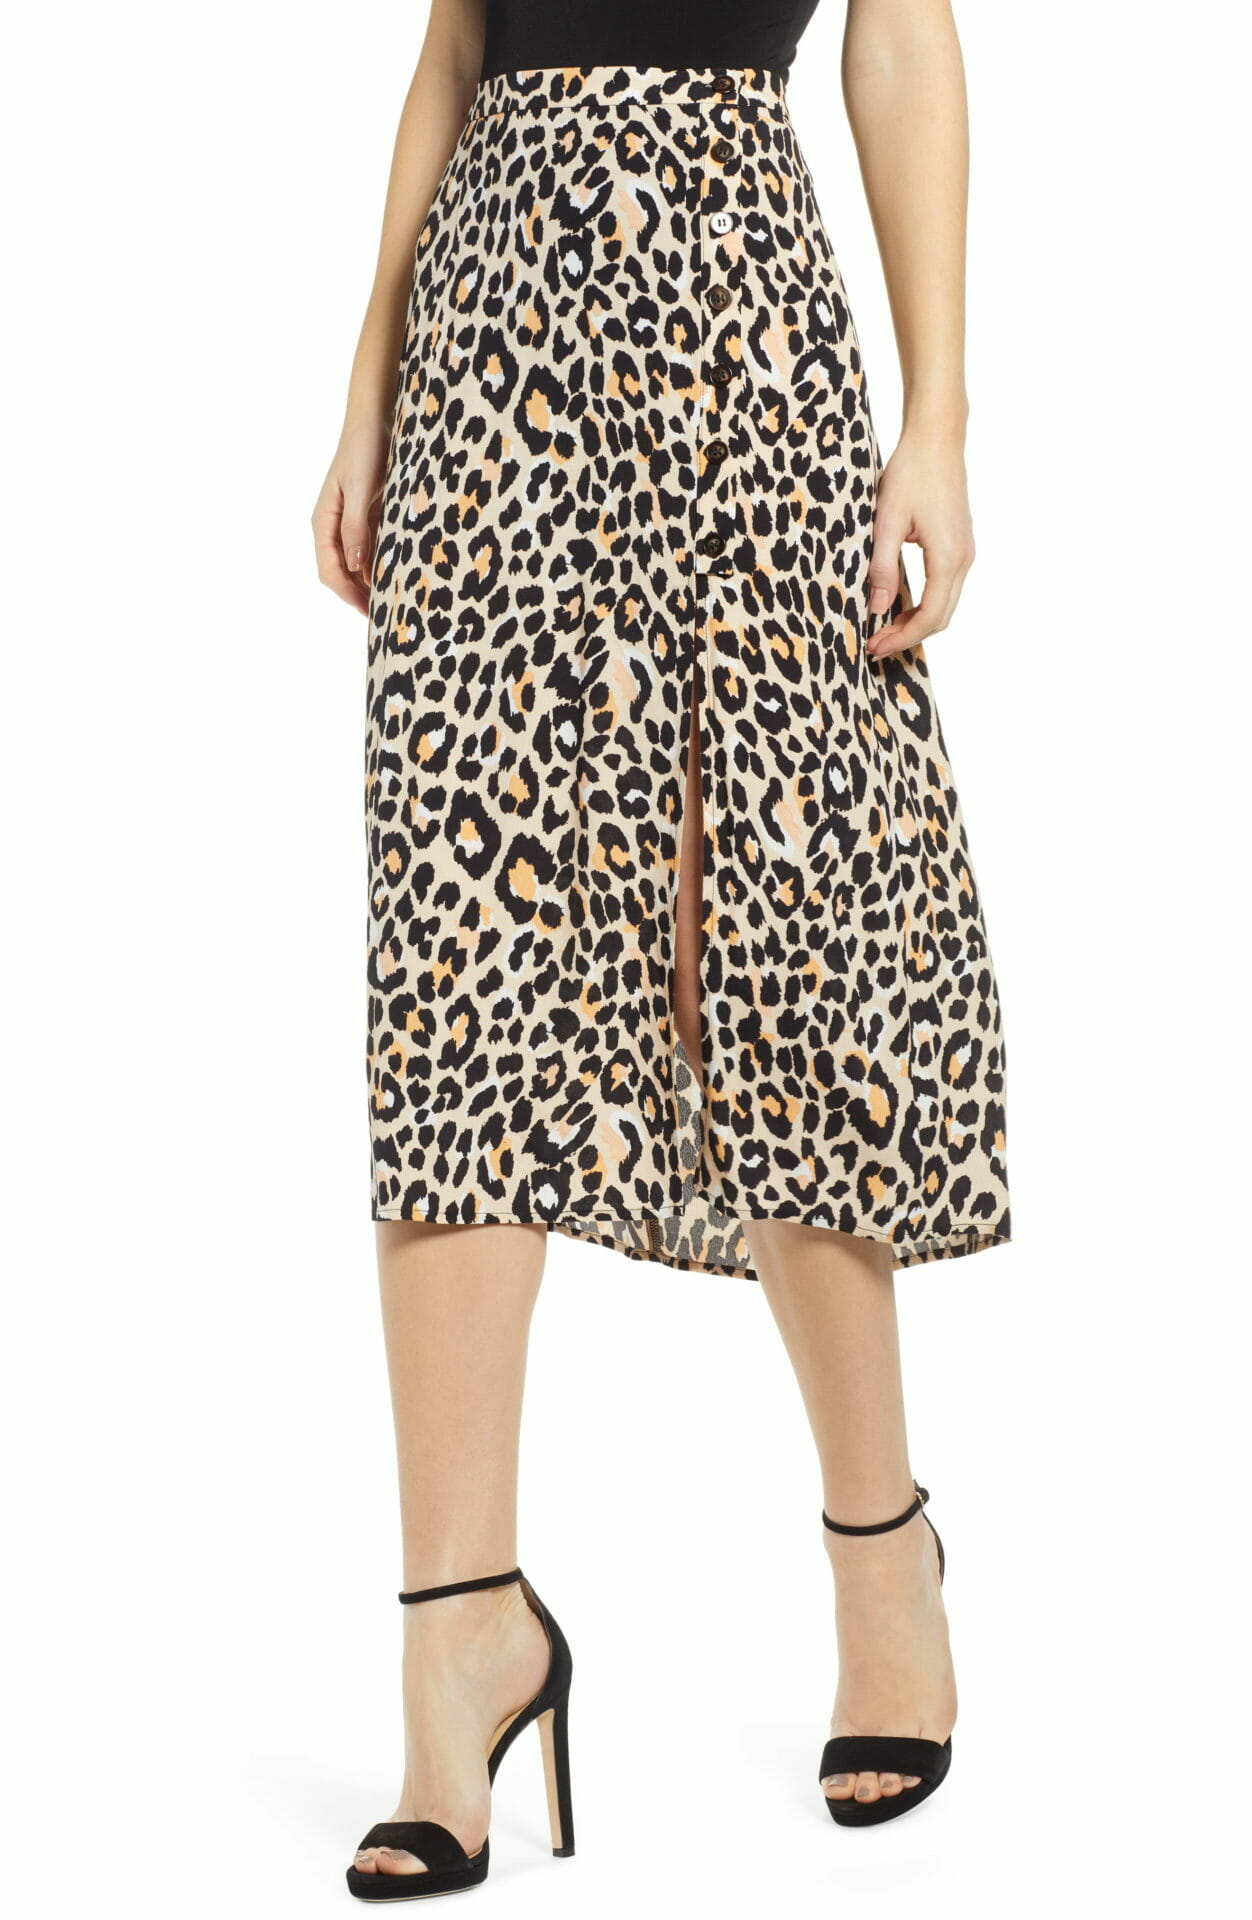 ASTR THE LABEL Leopard Print Button Front Midi Cotton Blend Skirt, Main, color, LEOPARD PRINT